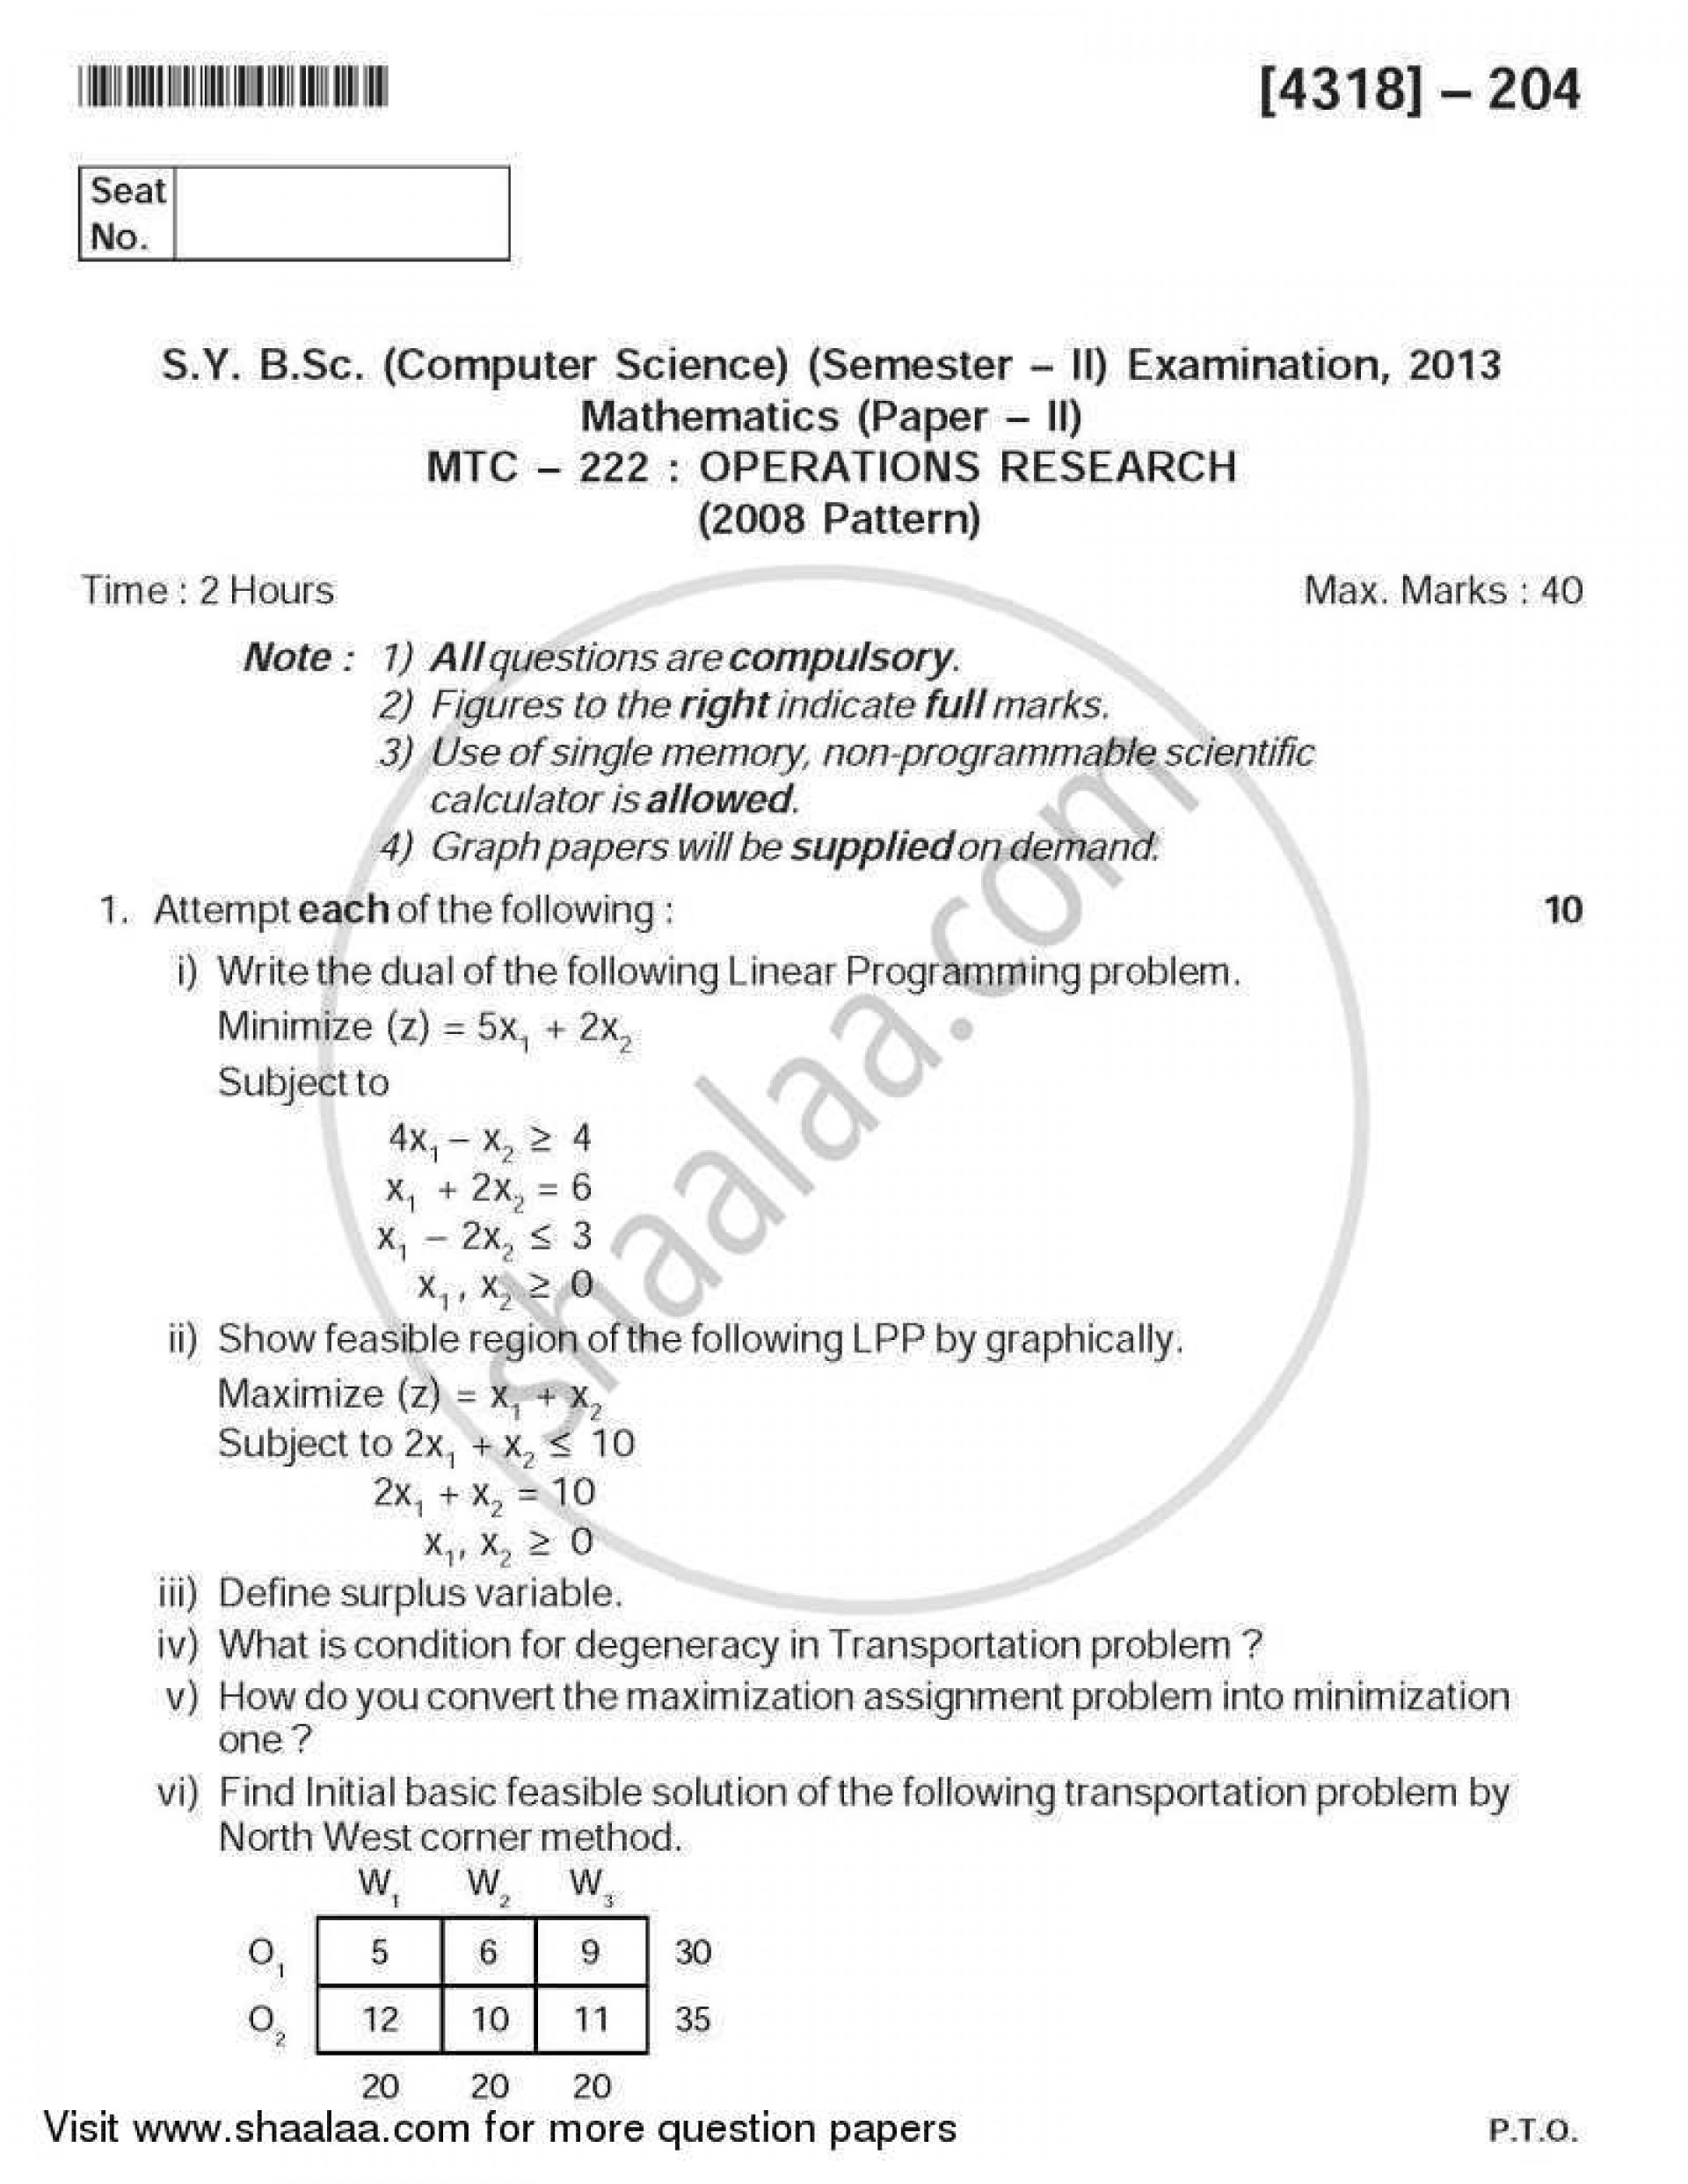 005 Computer Scienceh Papers Download University Of Pune Bachelor Bsc Operations Sybsc Mathematics Semester 2014 202a0006c3dde448887d1ae477c436d86 Fascinating Science Research Pdf Free Ieee 1920